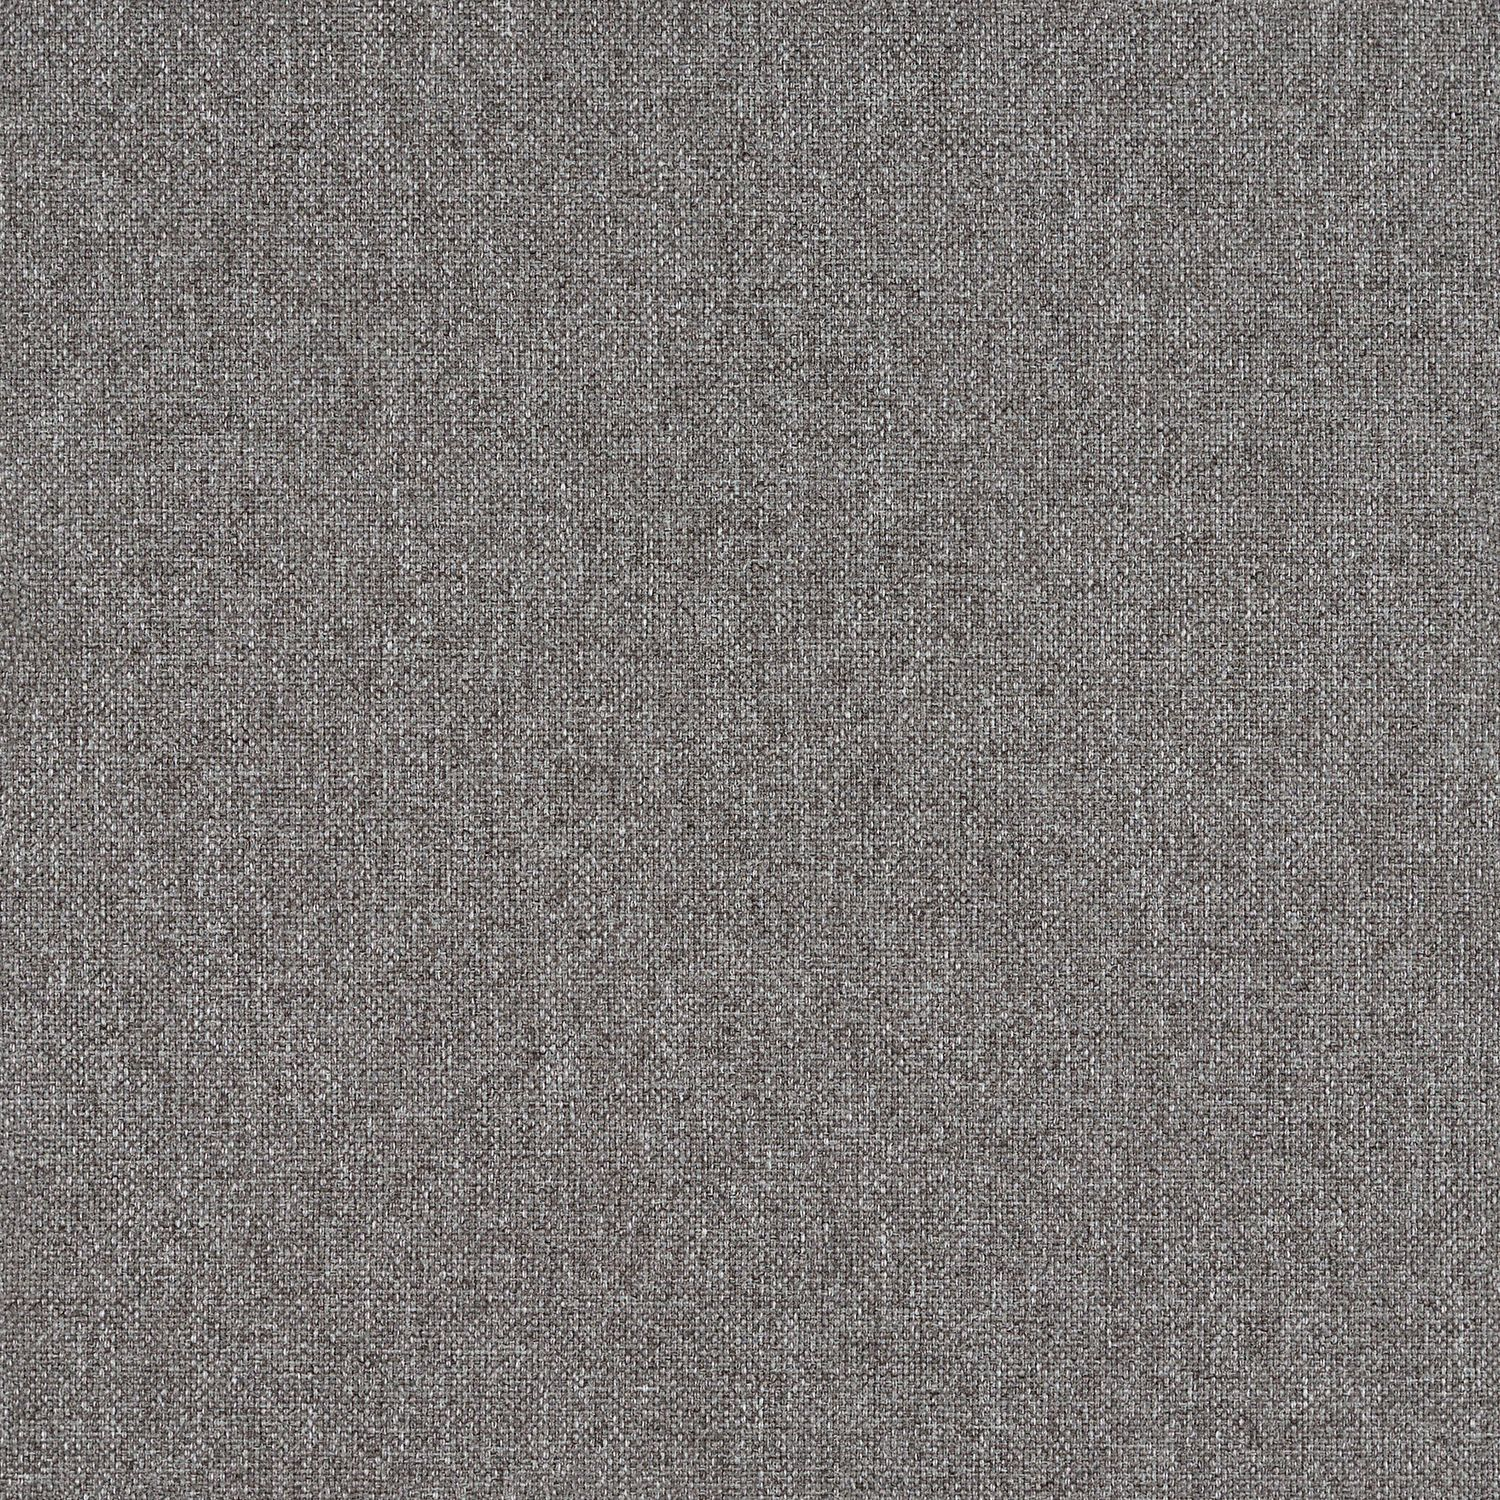 Backdrop - Fade - 1027 - 06 Tileable Swatches